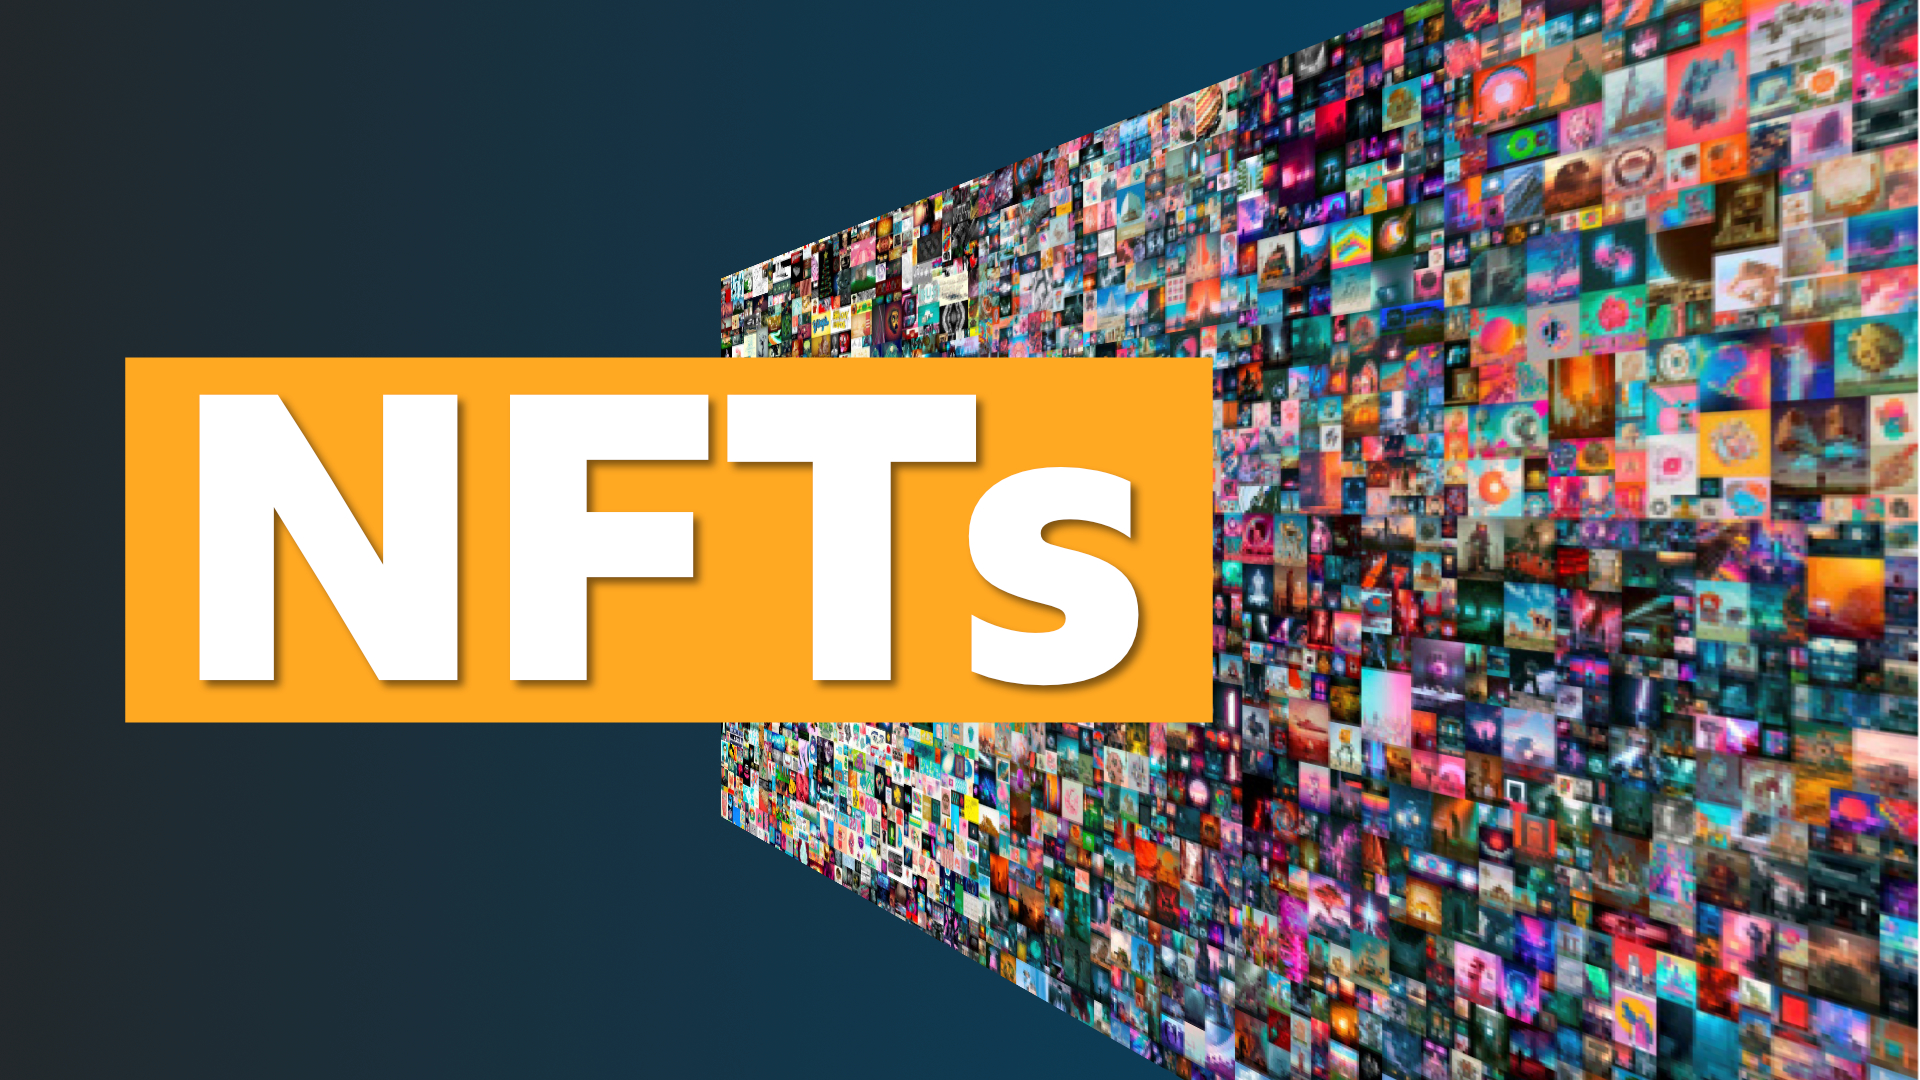 NFTs Are A Money Laundering Scheme For Rich People, Says Crypto Analyst